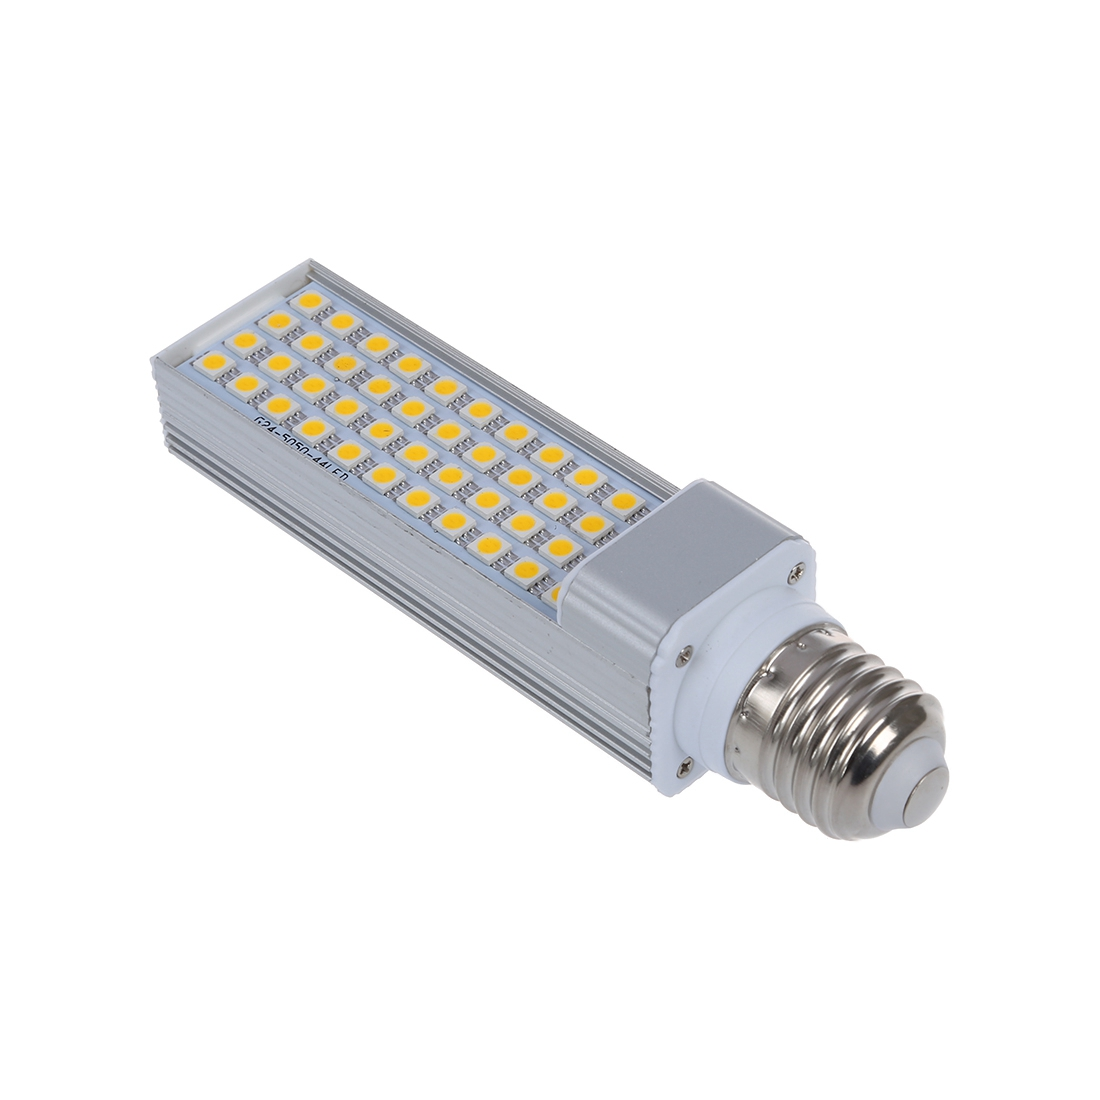 e27 44 smd 5050 led 11w warmweiss energiesparlampe spot licht lampe 85 265v a1 ebay. Black Bedroom Furniture Sets. Home Design Ideas